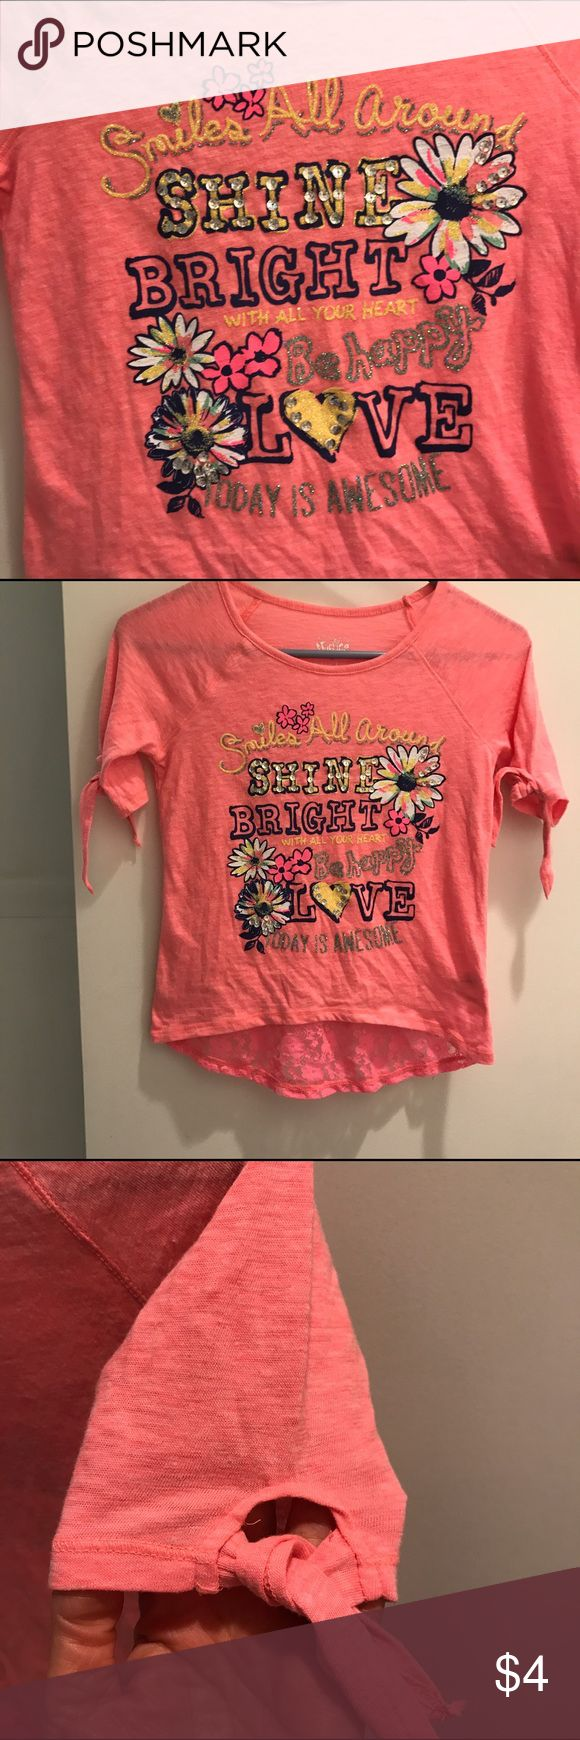 Justice Shirt 👚 Cute, Girl's Justice shirt with positive message.  This has been washed but never worn.  Tie sleeves and lacy hem in back.  Size 8.  Today is Awesome! Justice Shirts & Tops